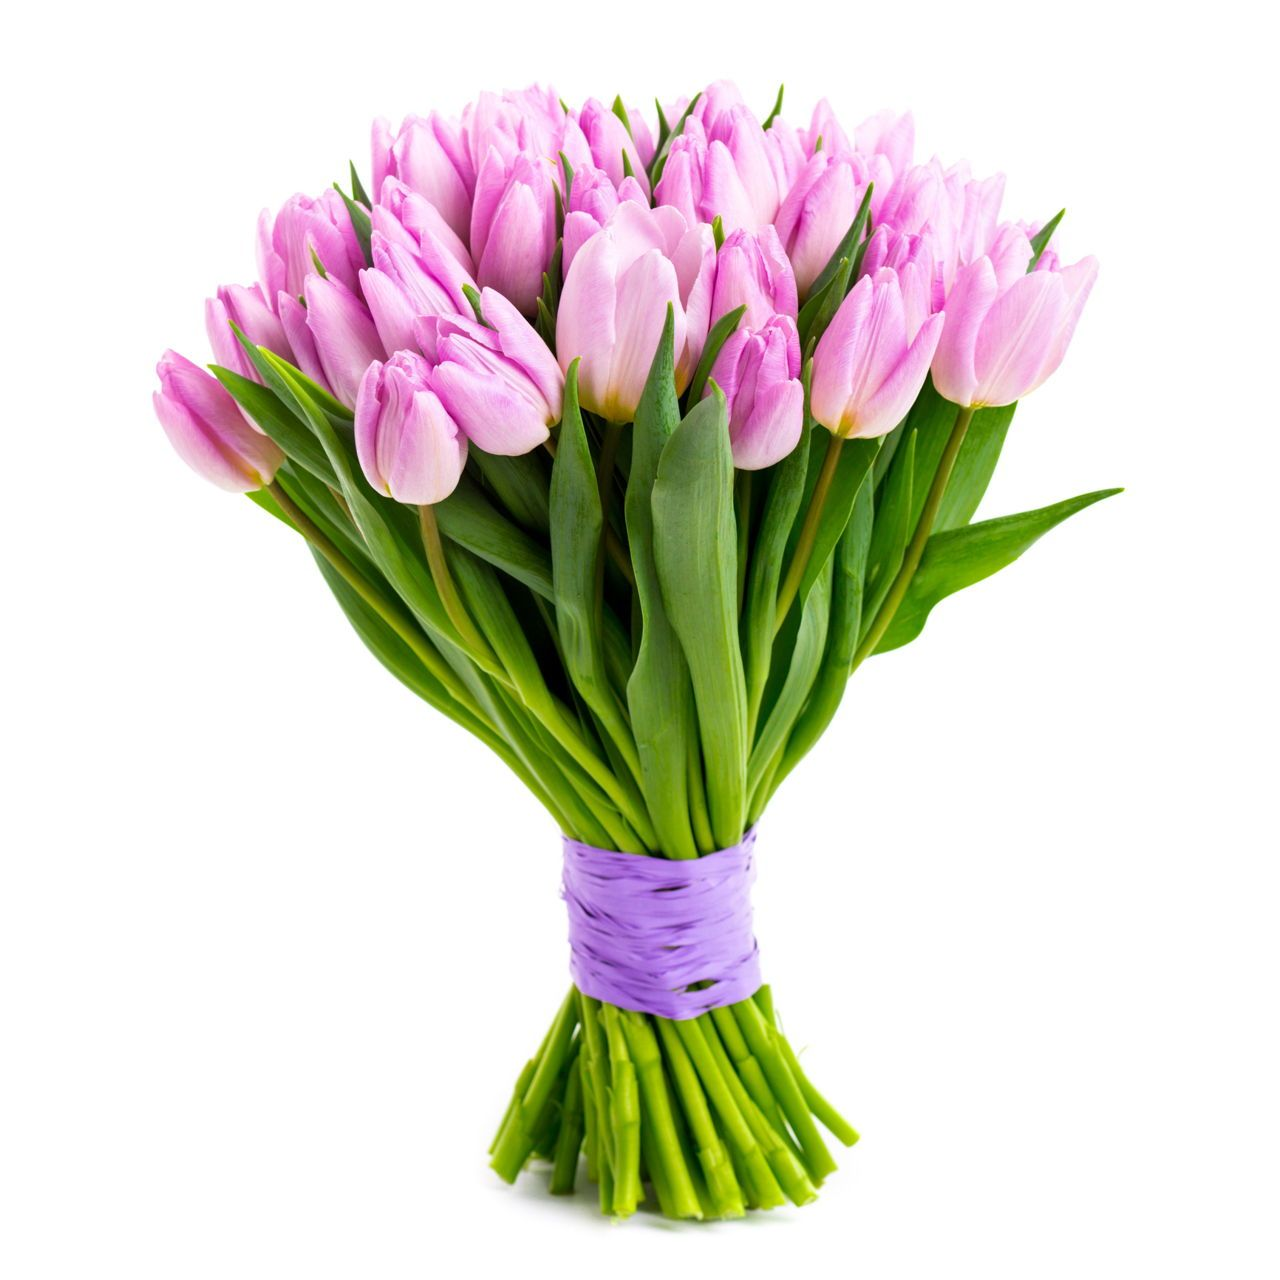 How To Care For Tulip Bulbs After Bloom To Keep Them Looking Beautiful Gardenerdy Tulip Bulbs Flower Care Indoor Flowers